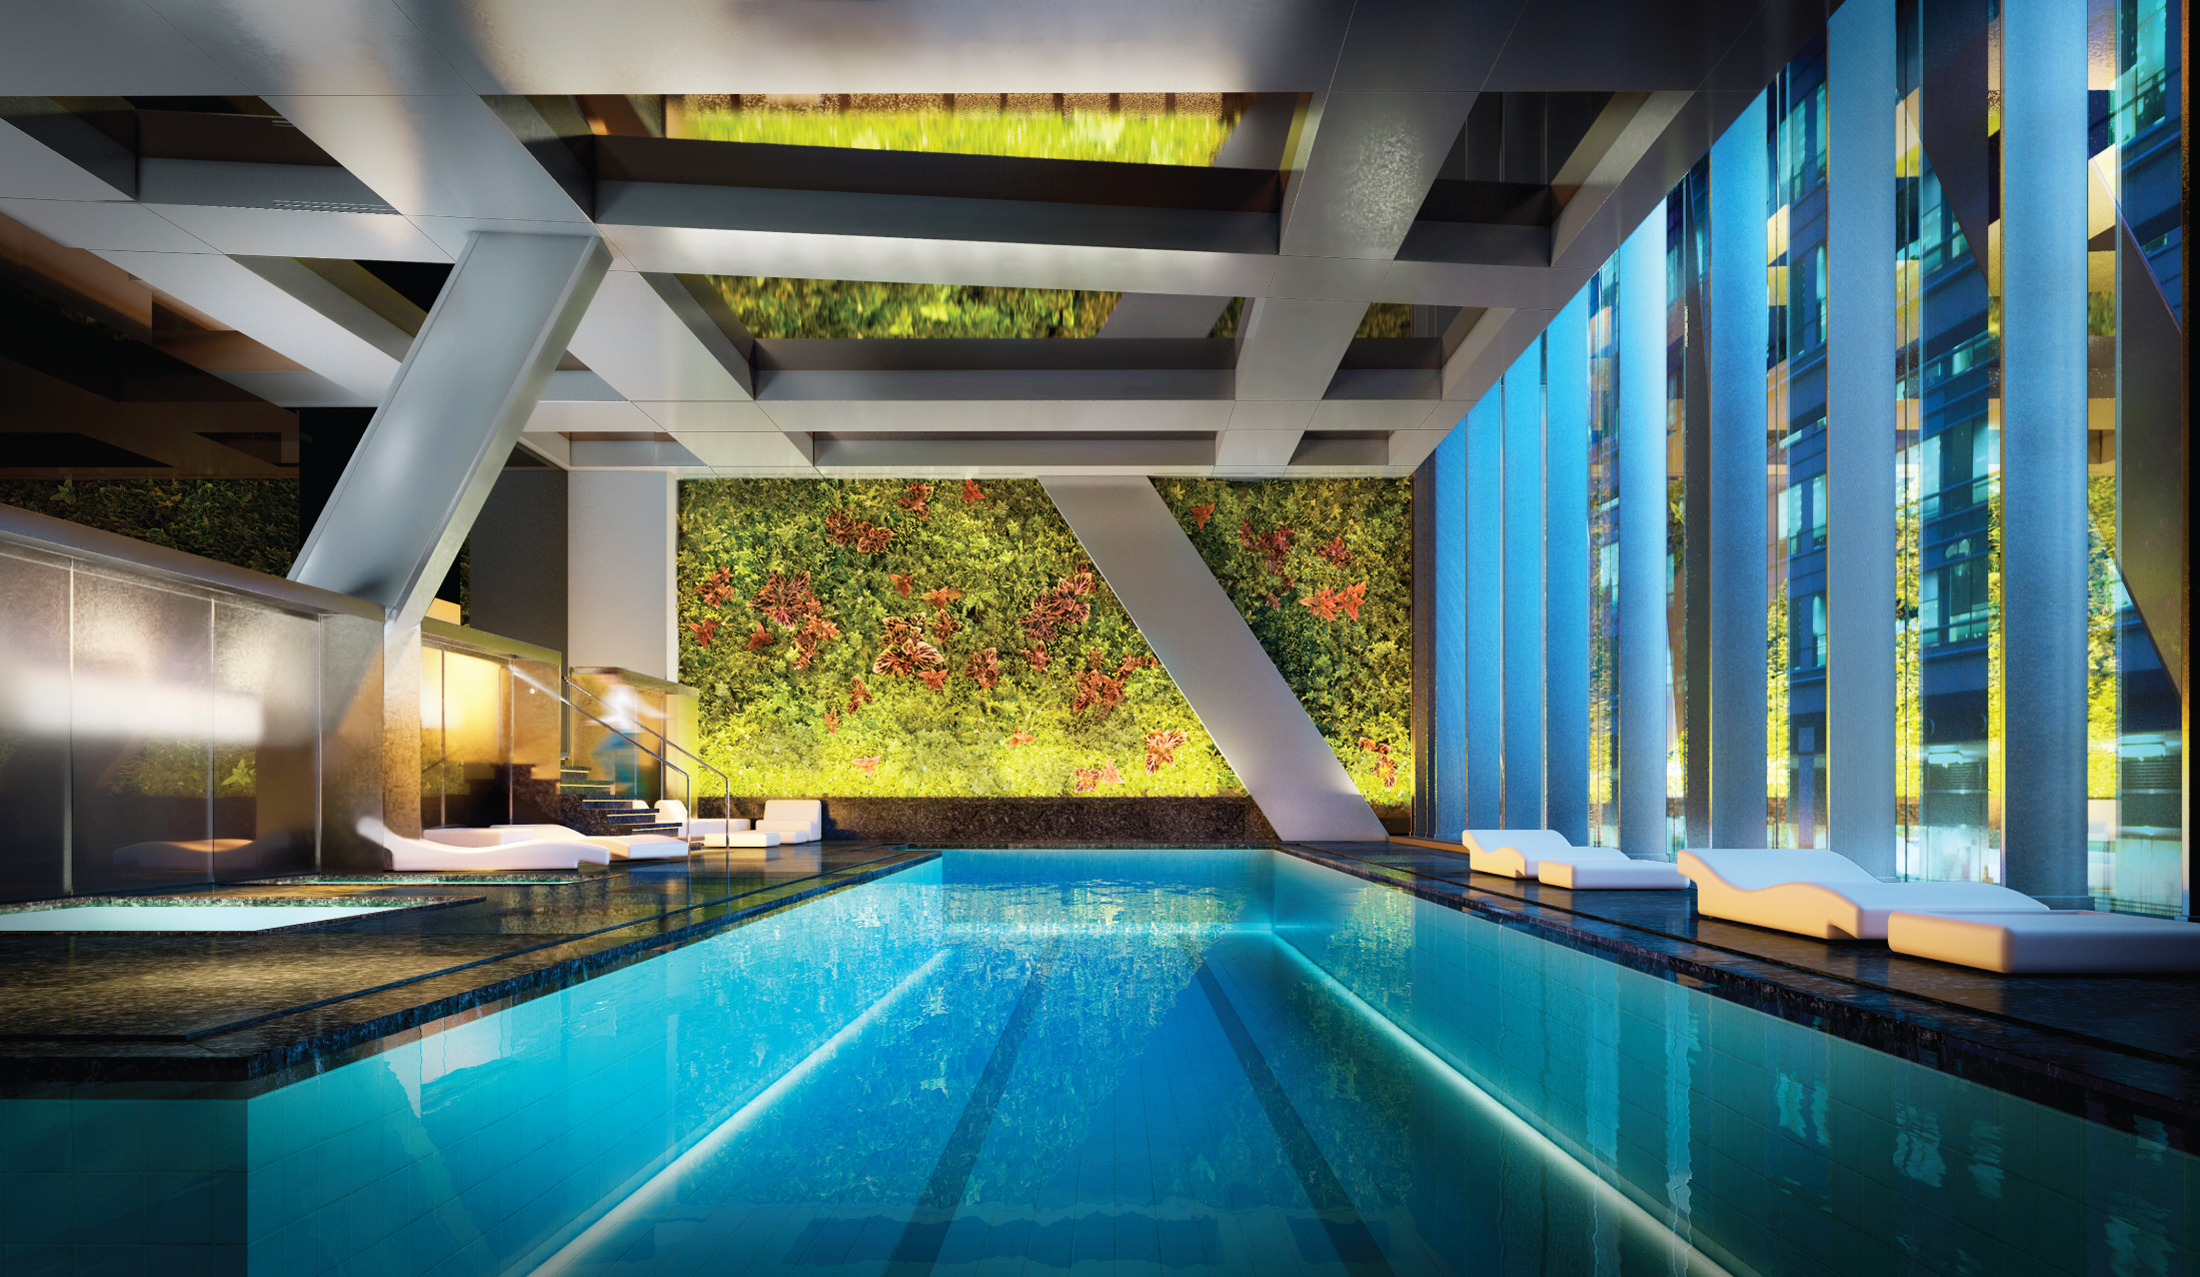 Construction Update: 53W53 Designed by Jean Nouvel Nears 50% Completion